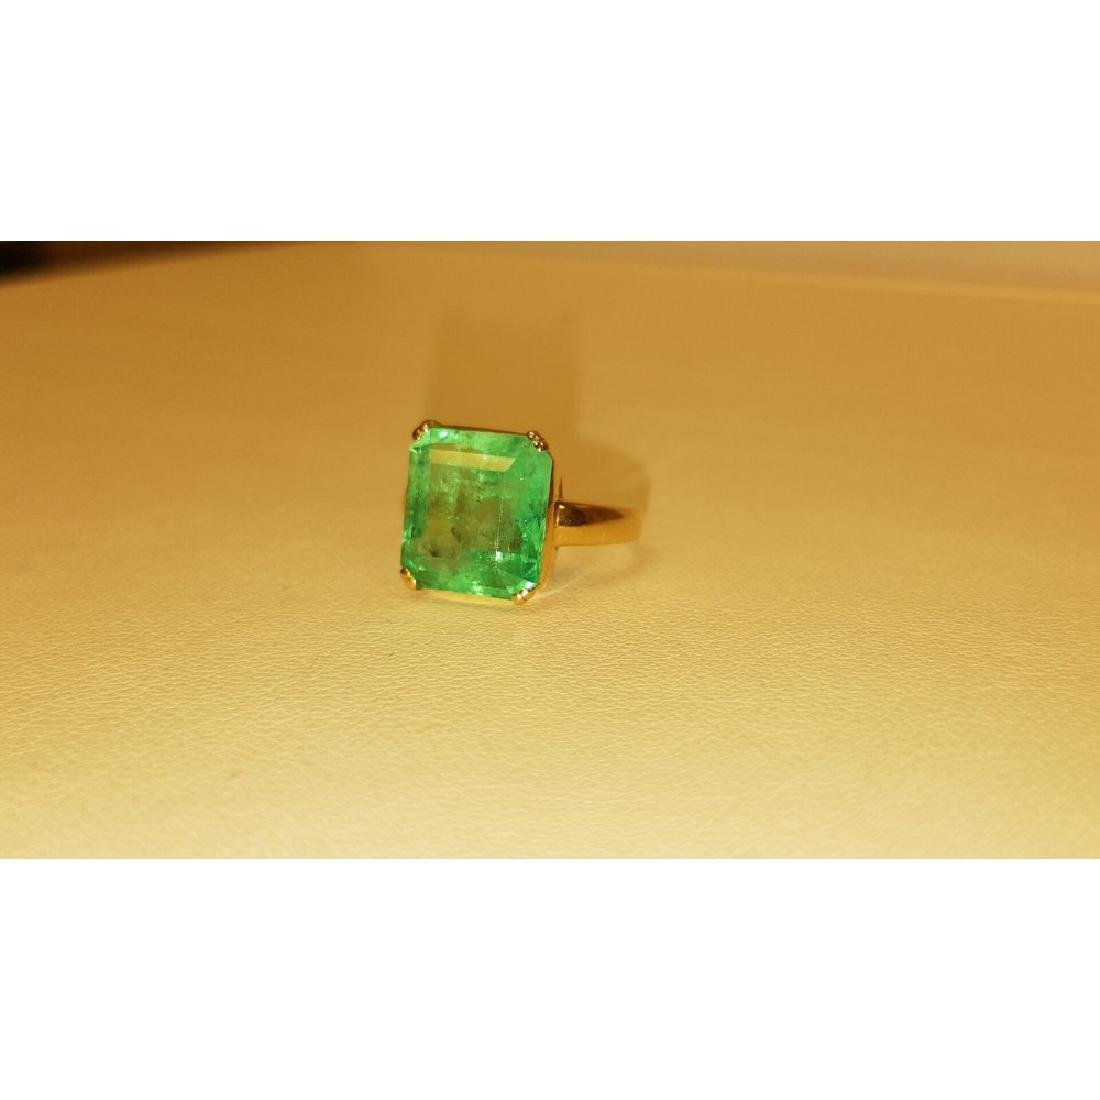 14K Yellow Gold, 6.00 Carat Solitaire Emerald Ring - 4